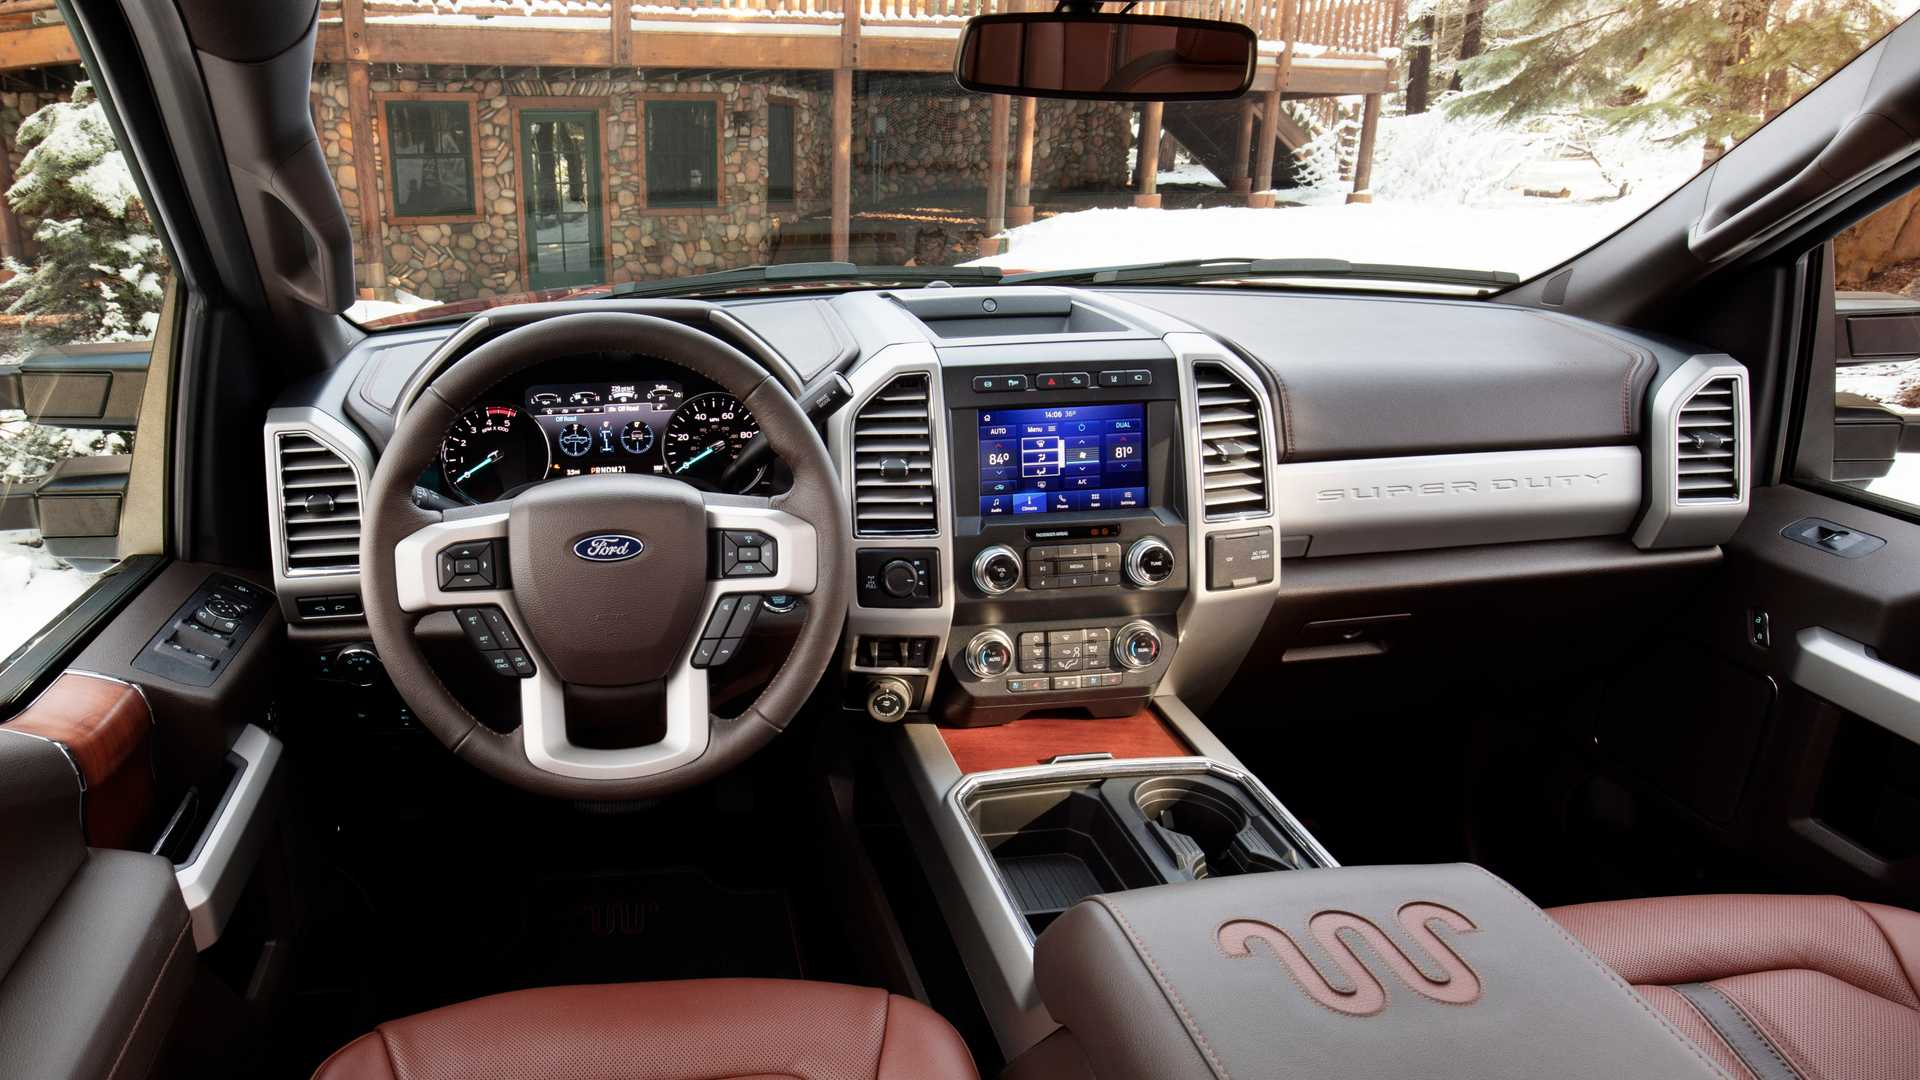 2020-ford-super-duty-interior (1)